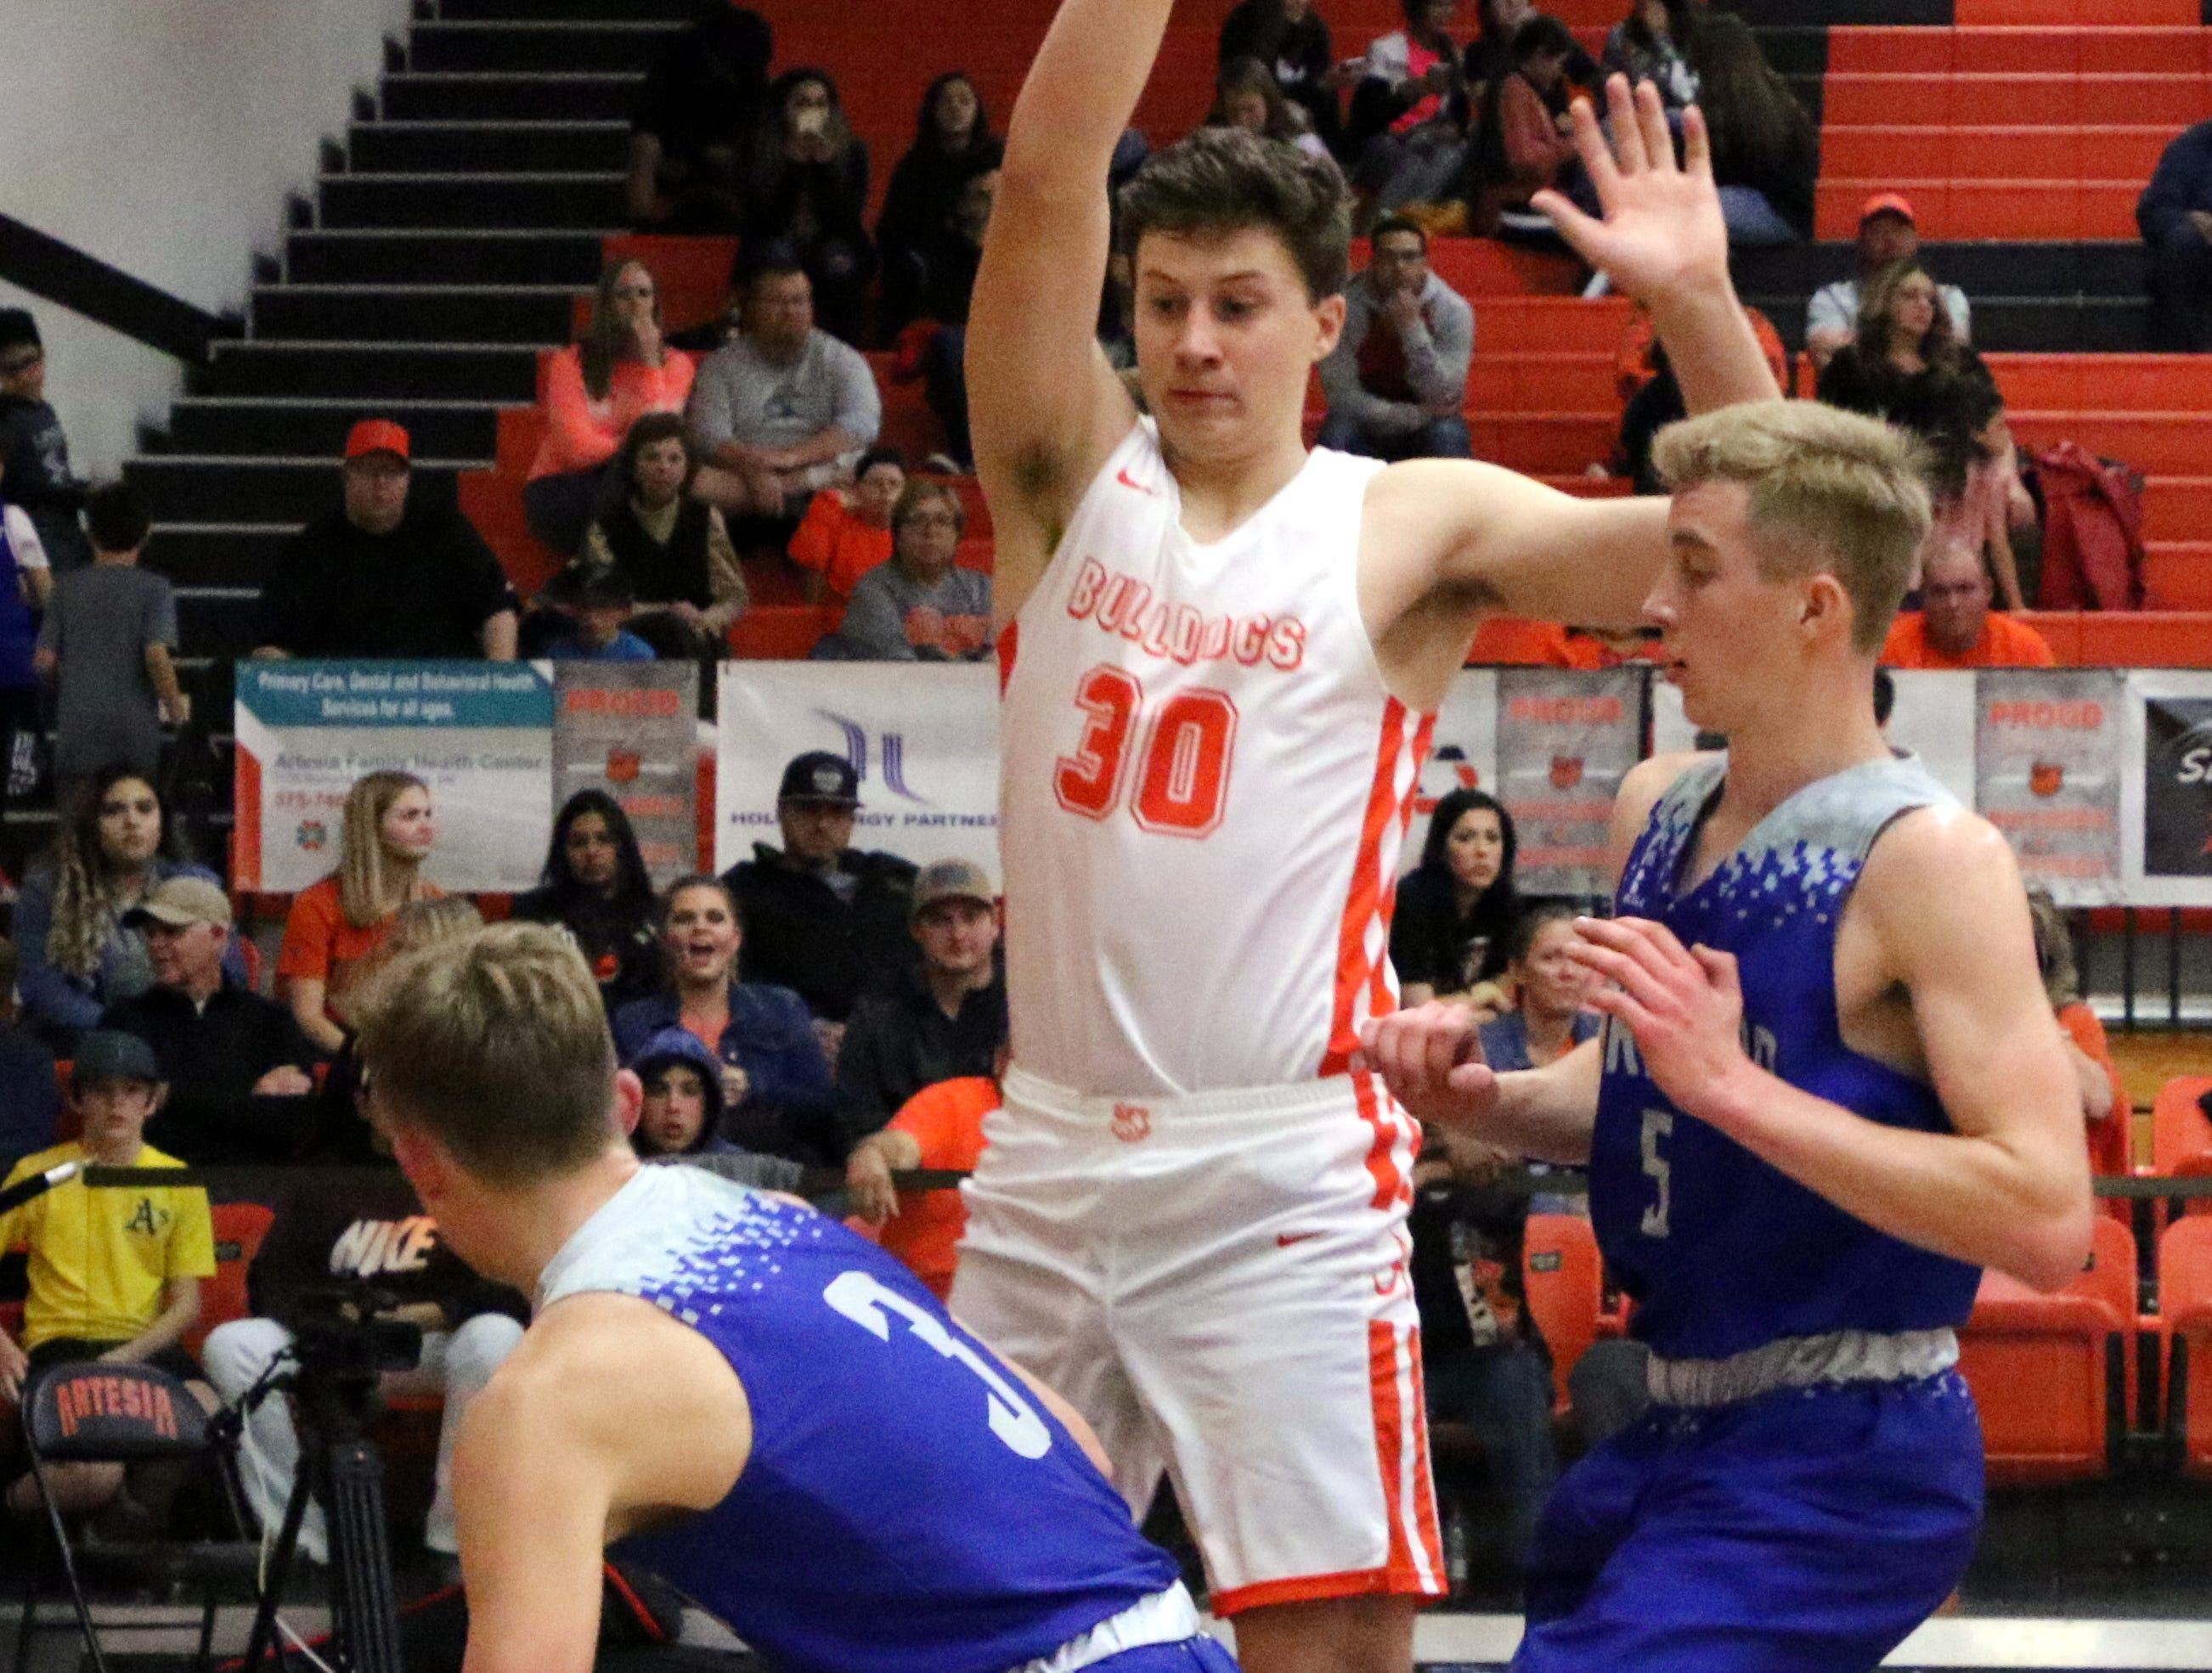 Artesia's Clay Houghtaling posts up to defends against a shot during Friday's game against Carlsbad.